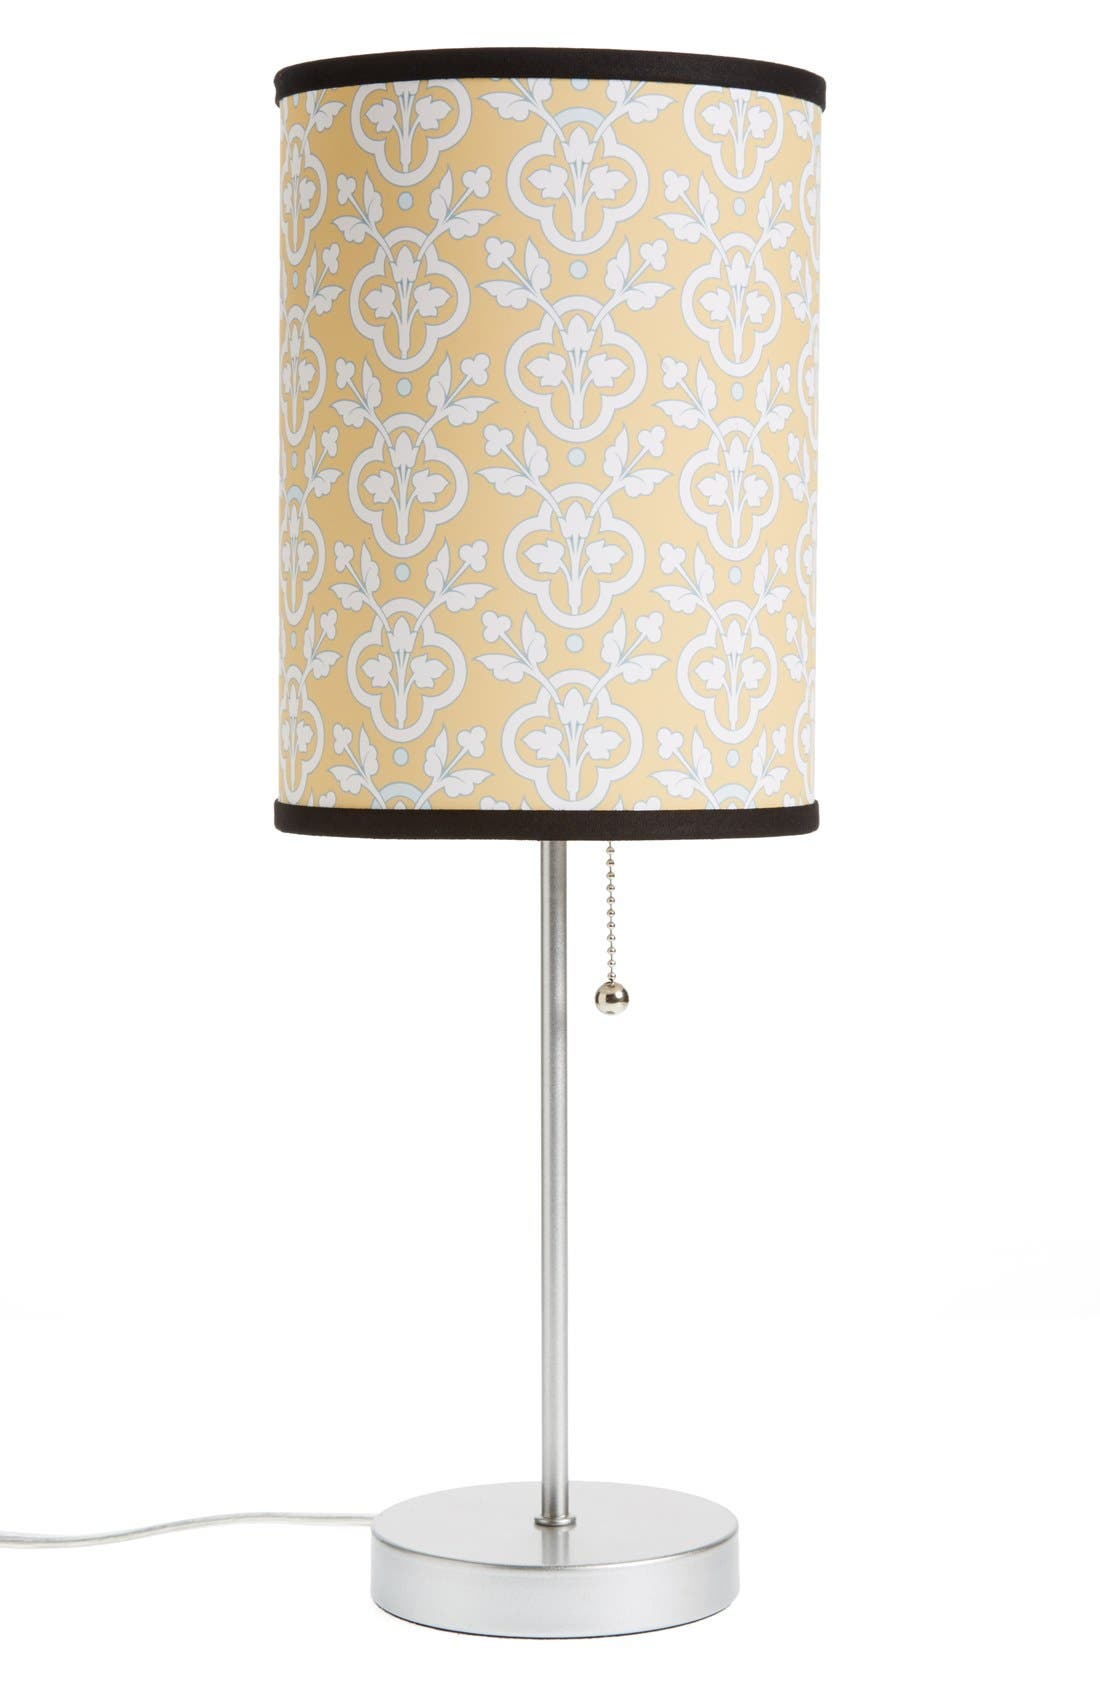 Main Image - LAMP-IN-A-BOX Medallion Table Lamp